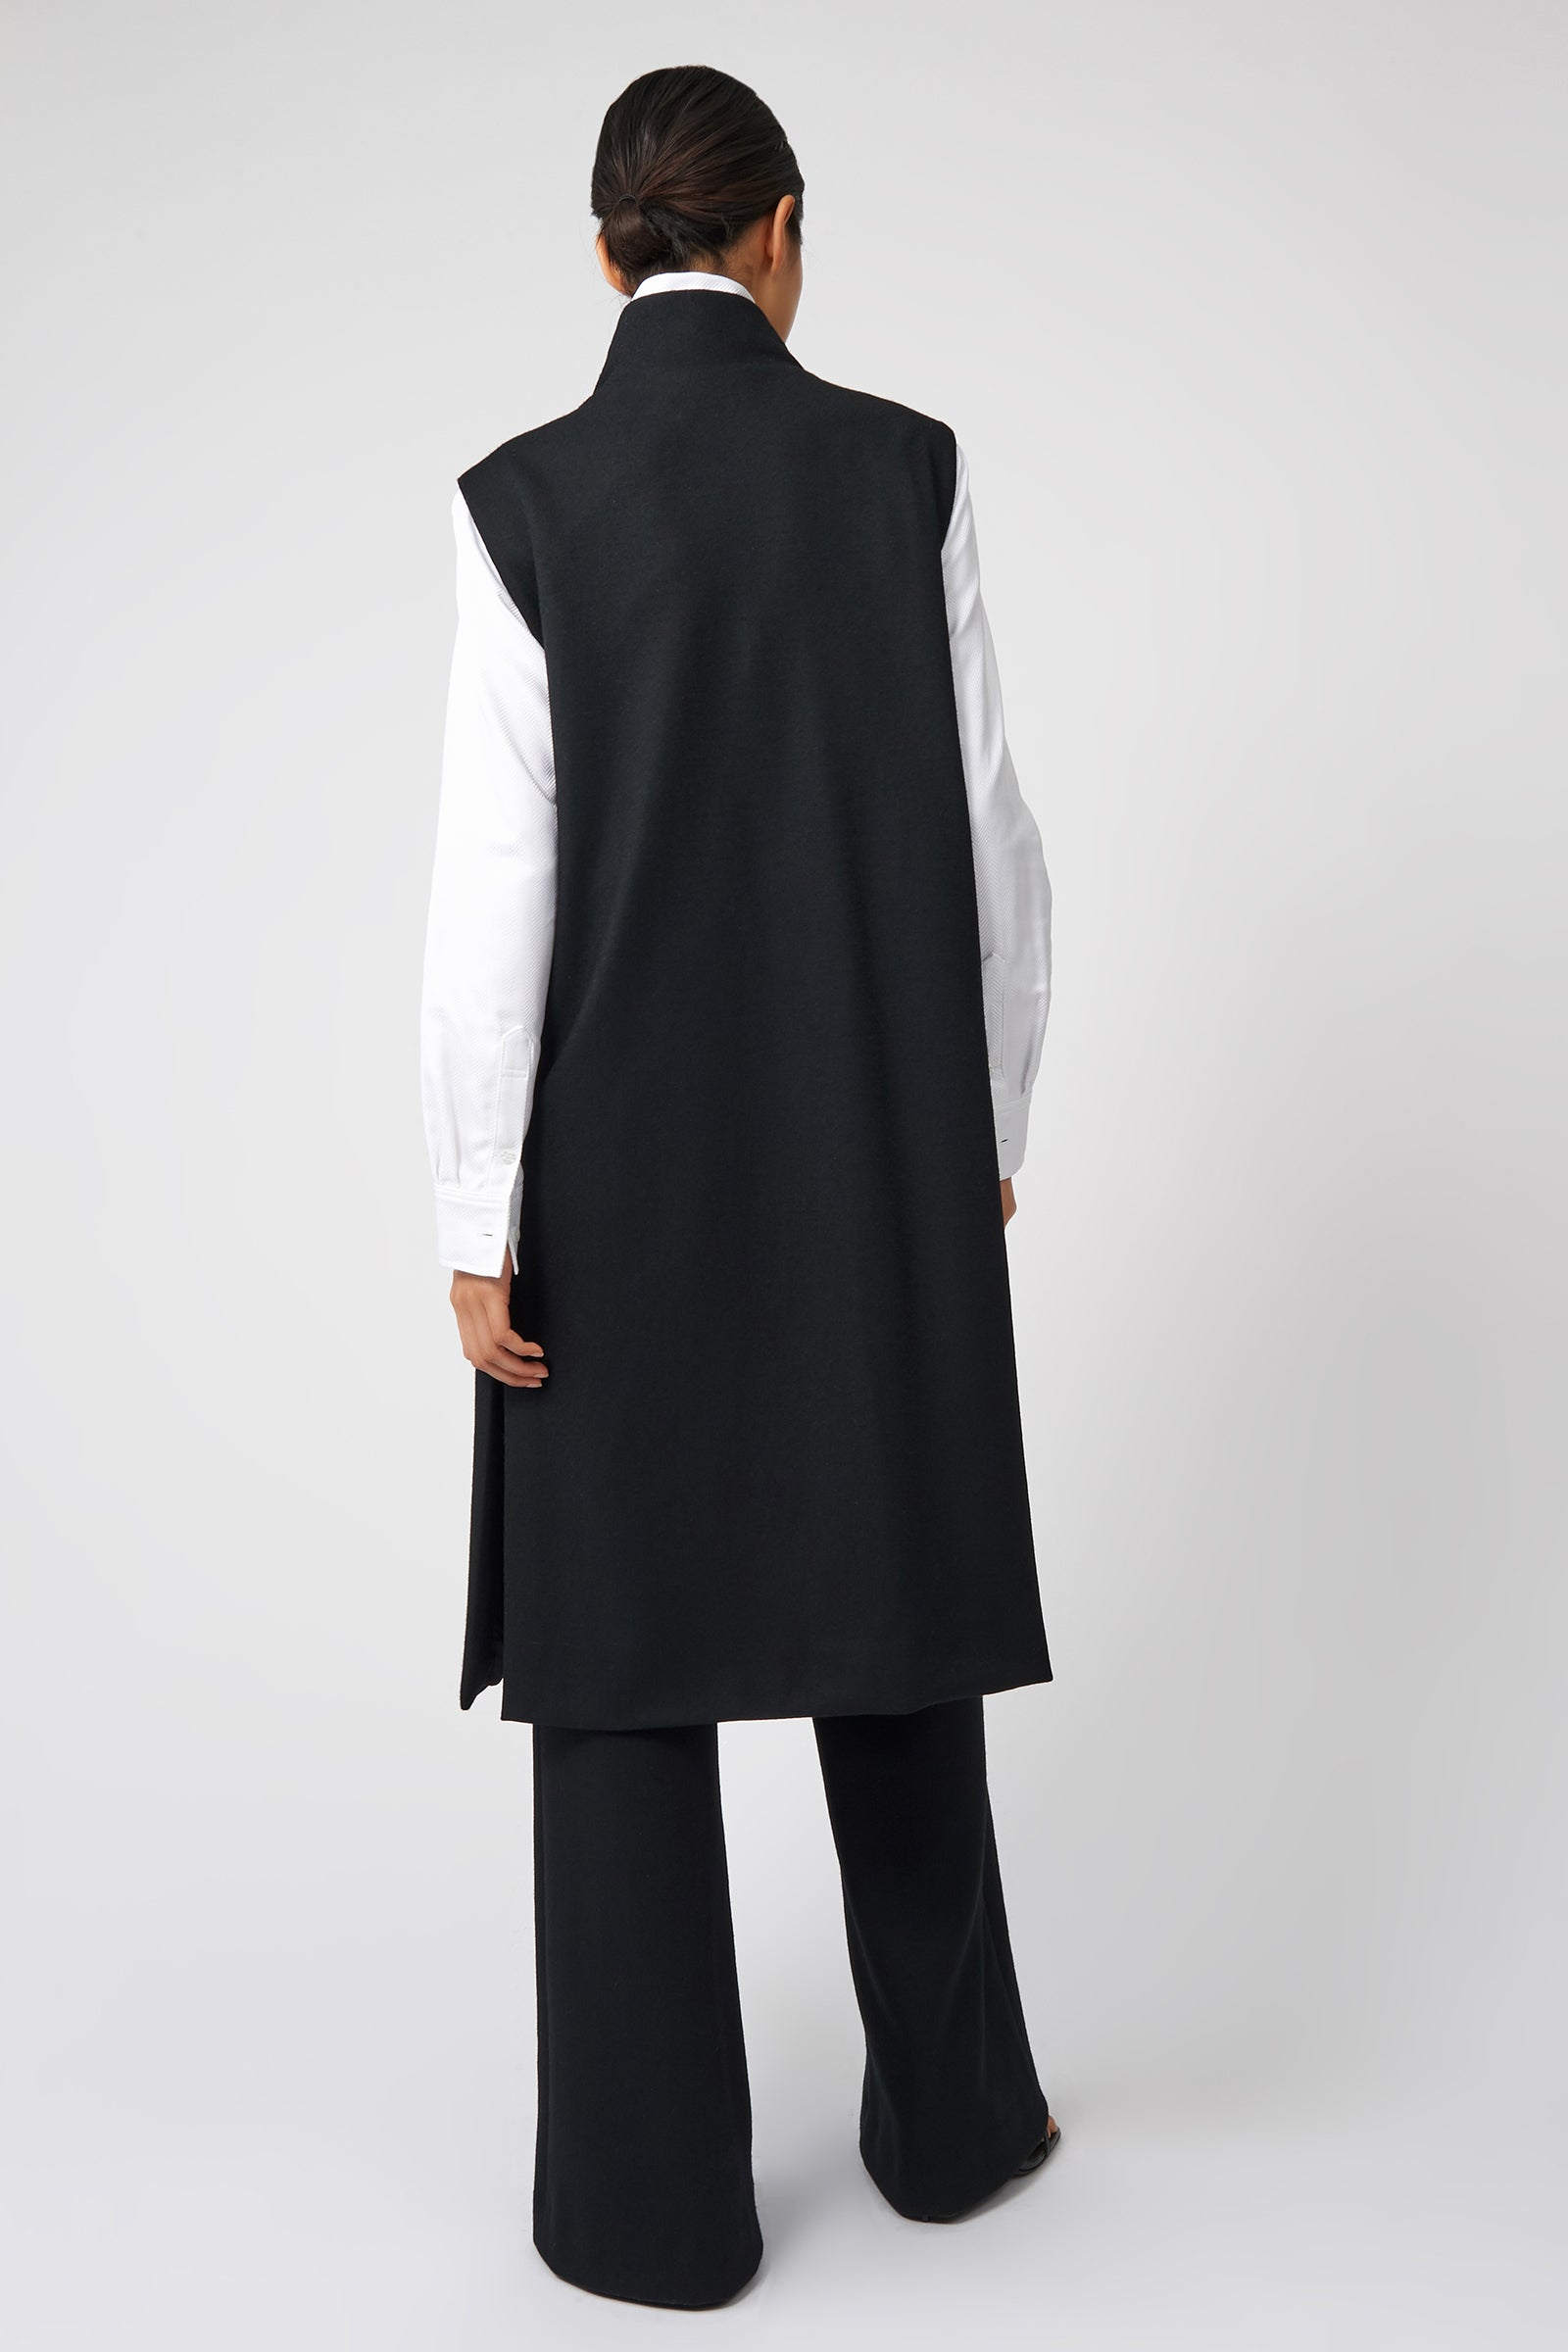 Kal Rieman Side Zip Vest in Black on Model Front View